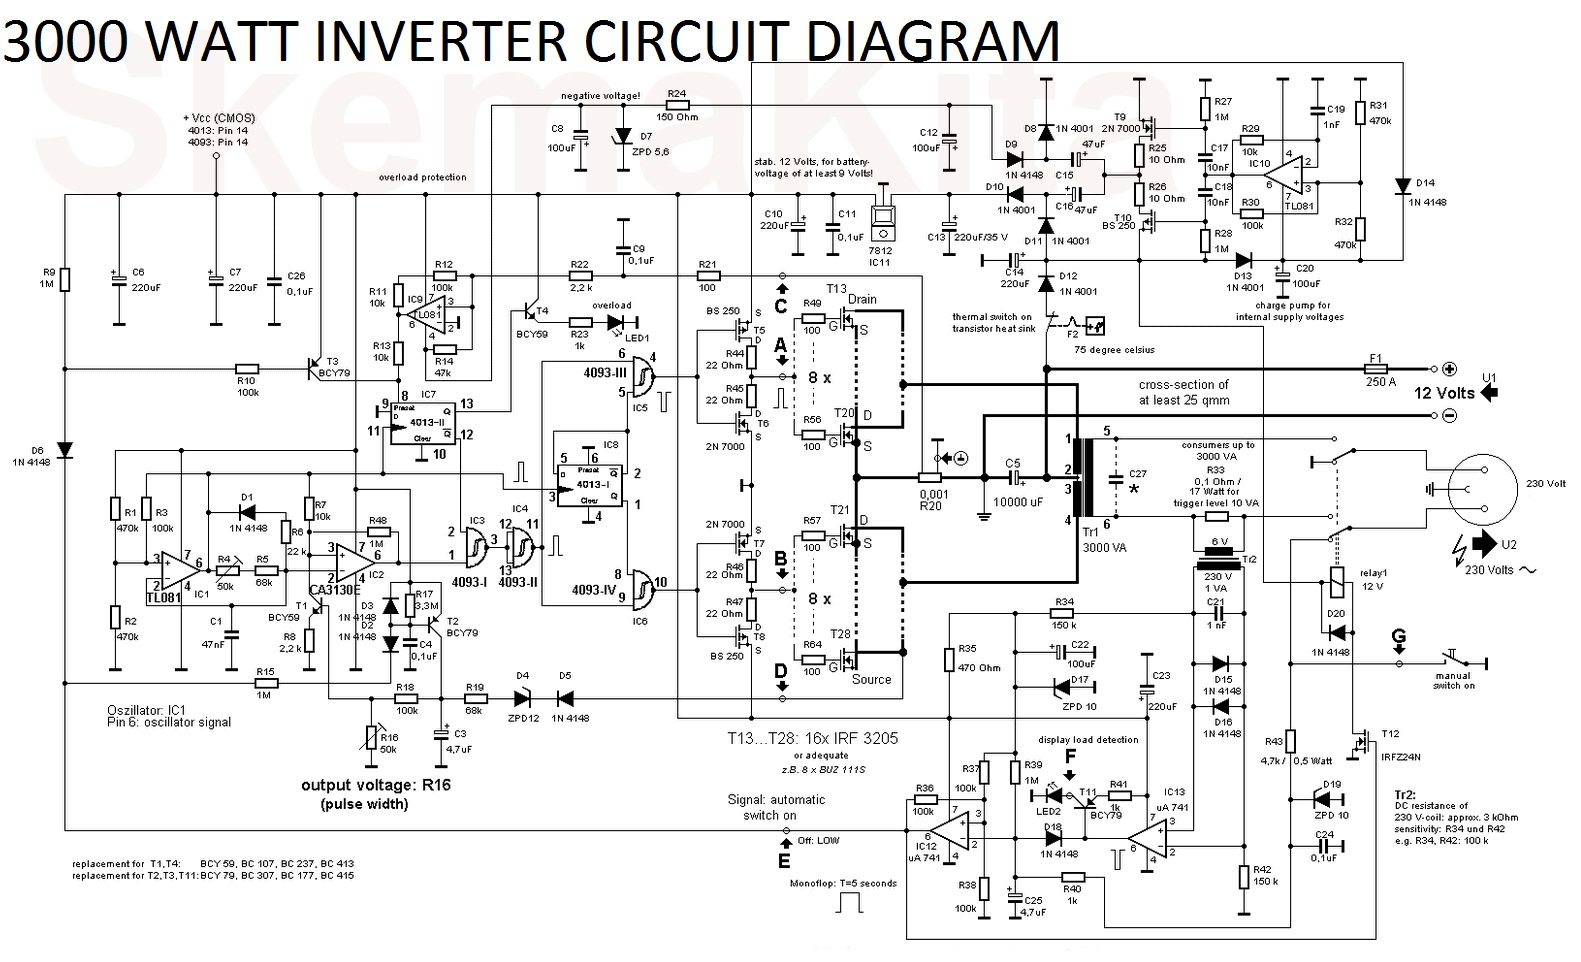 3000 Watt Inverter Circuit Diagram on simple electrical schematic examples